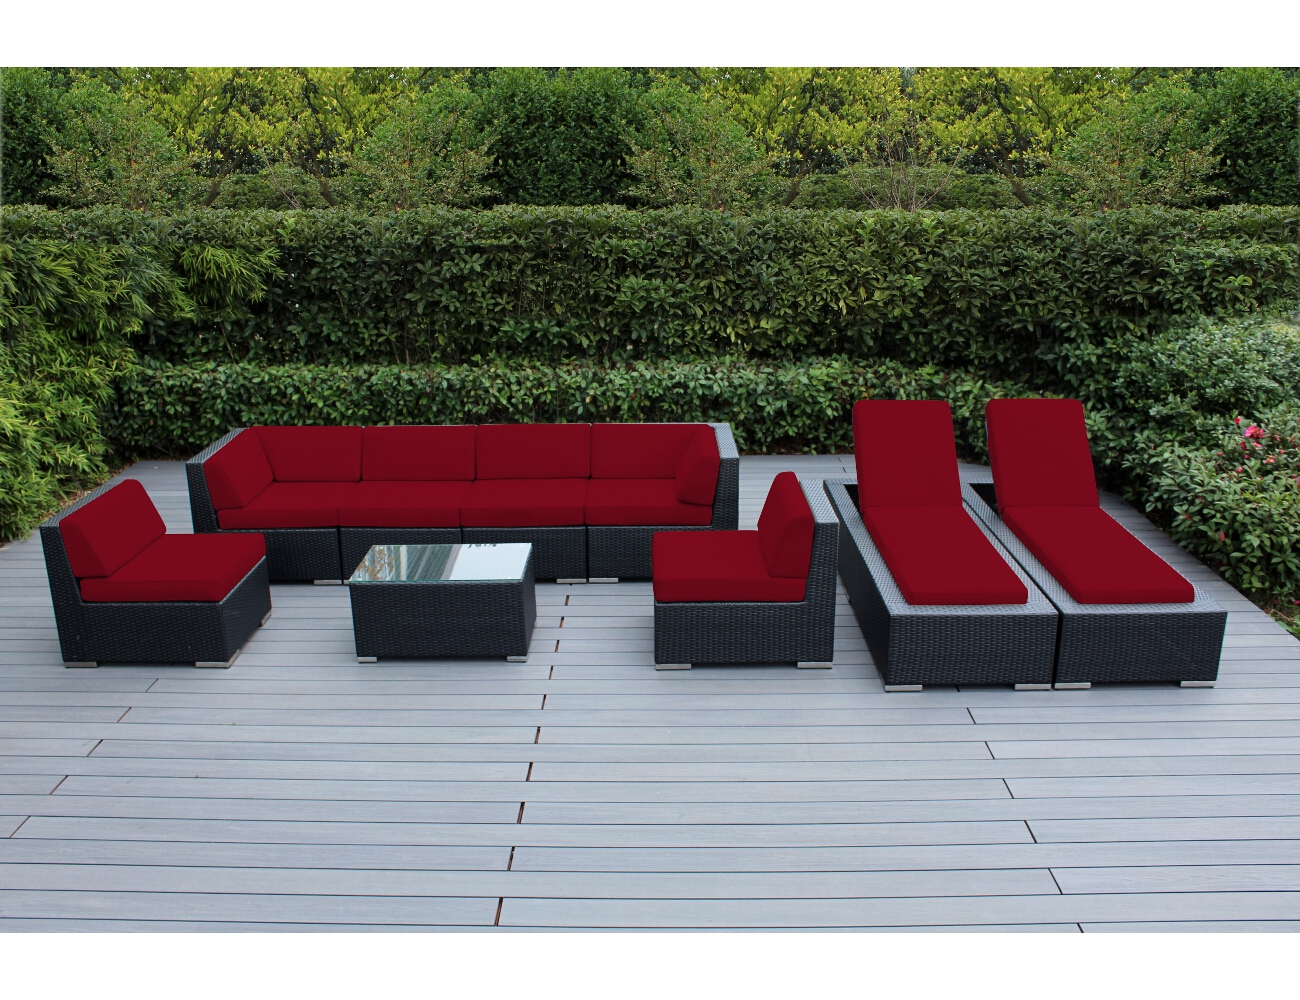 Ohana 9 Piece Outdoor Wicker Patio Furniture Sectional Conversation Set  With Chaise Lounges   Black Wicker